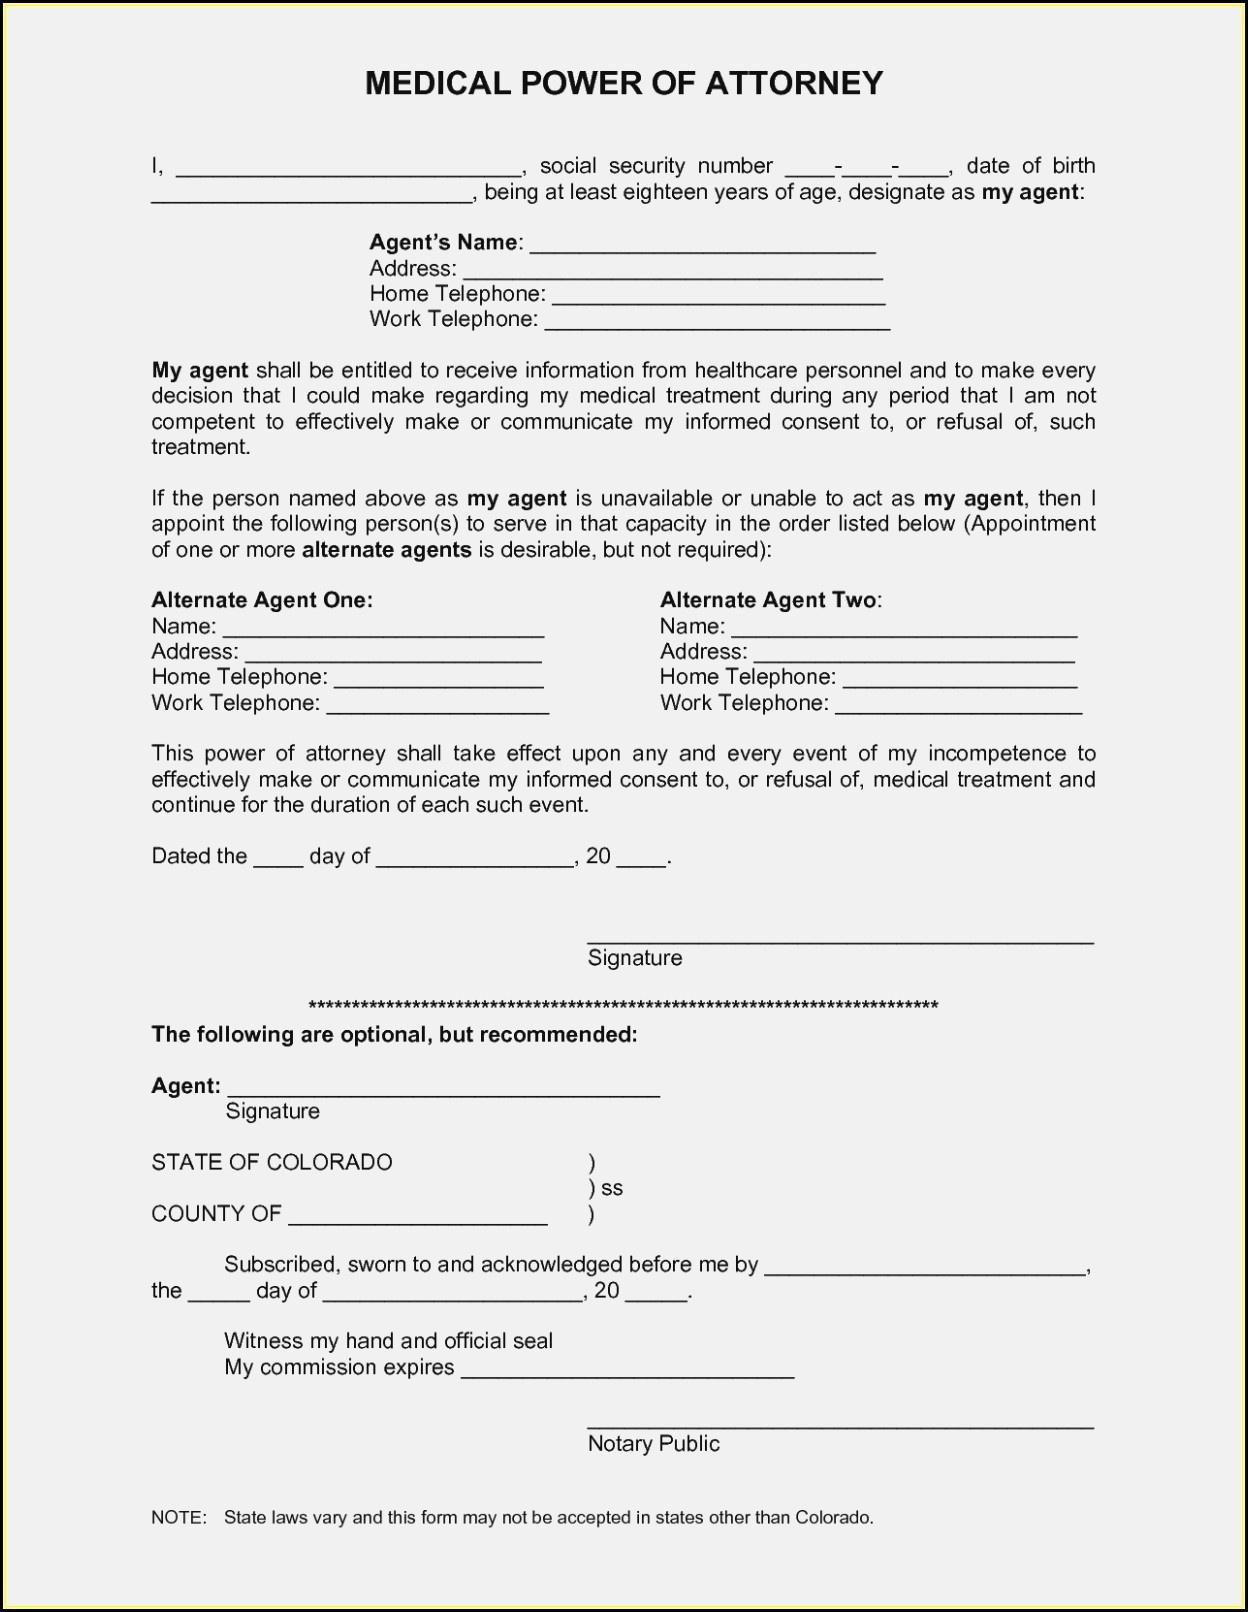 Free Printable Medical Power Of Attorney Forms - Form : Resume - Free Printable Medical Power Of Attorney Forms